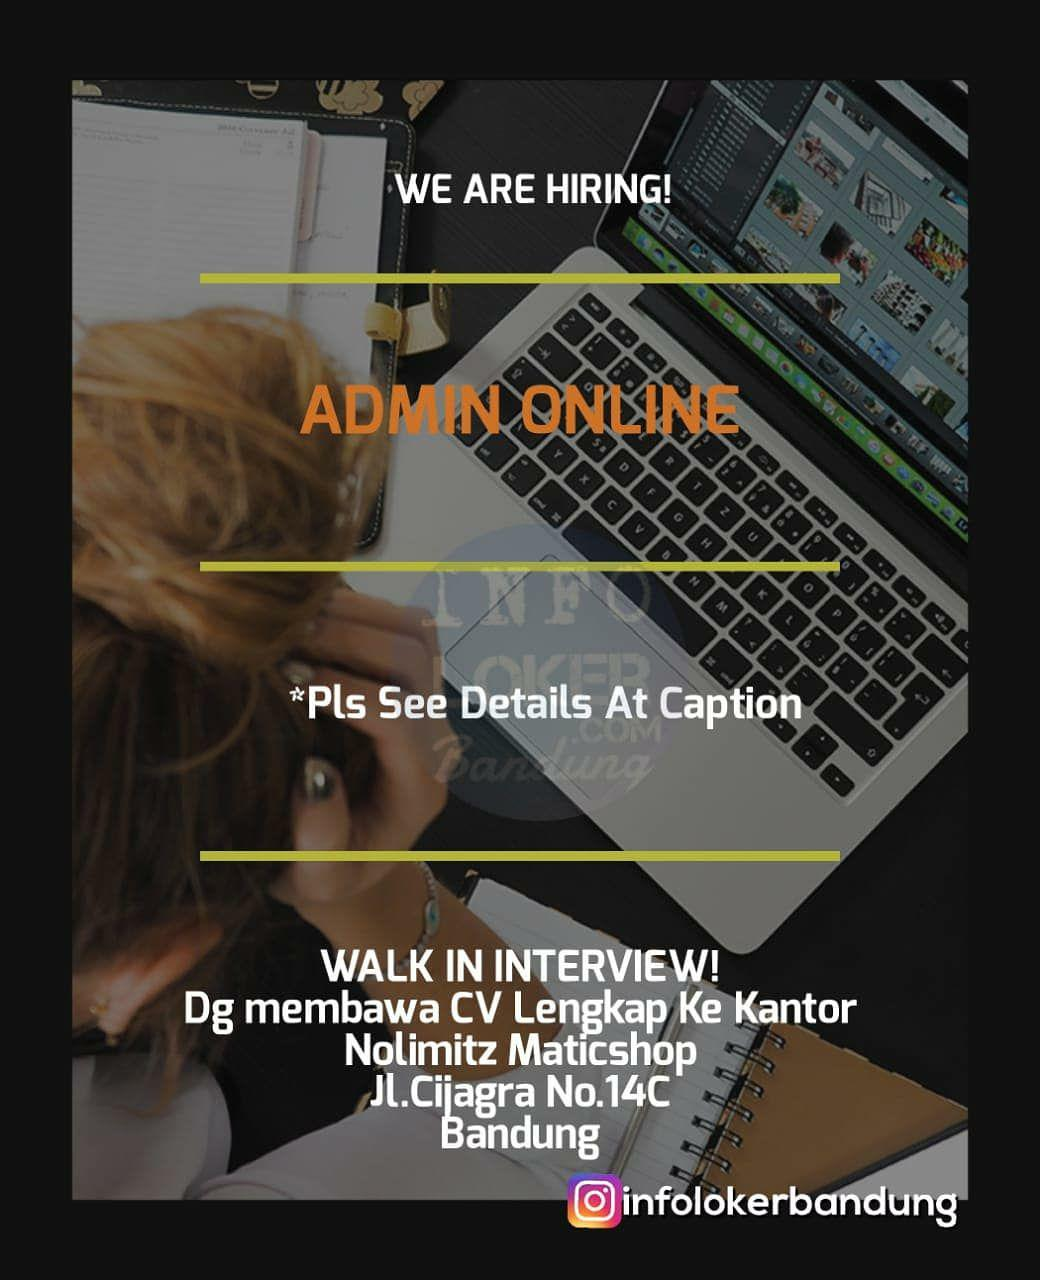 Walk In Interview Nolimitz Matic Shop Bandung September 2018